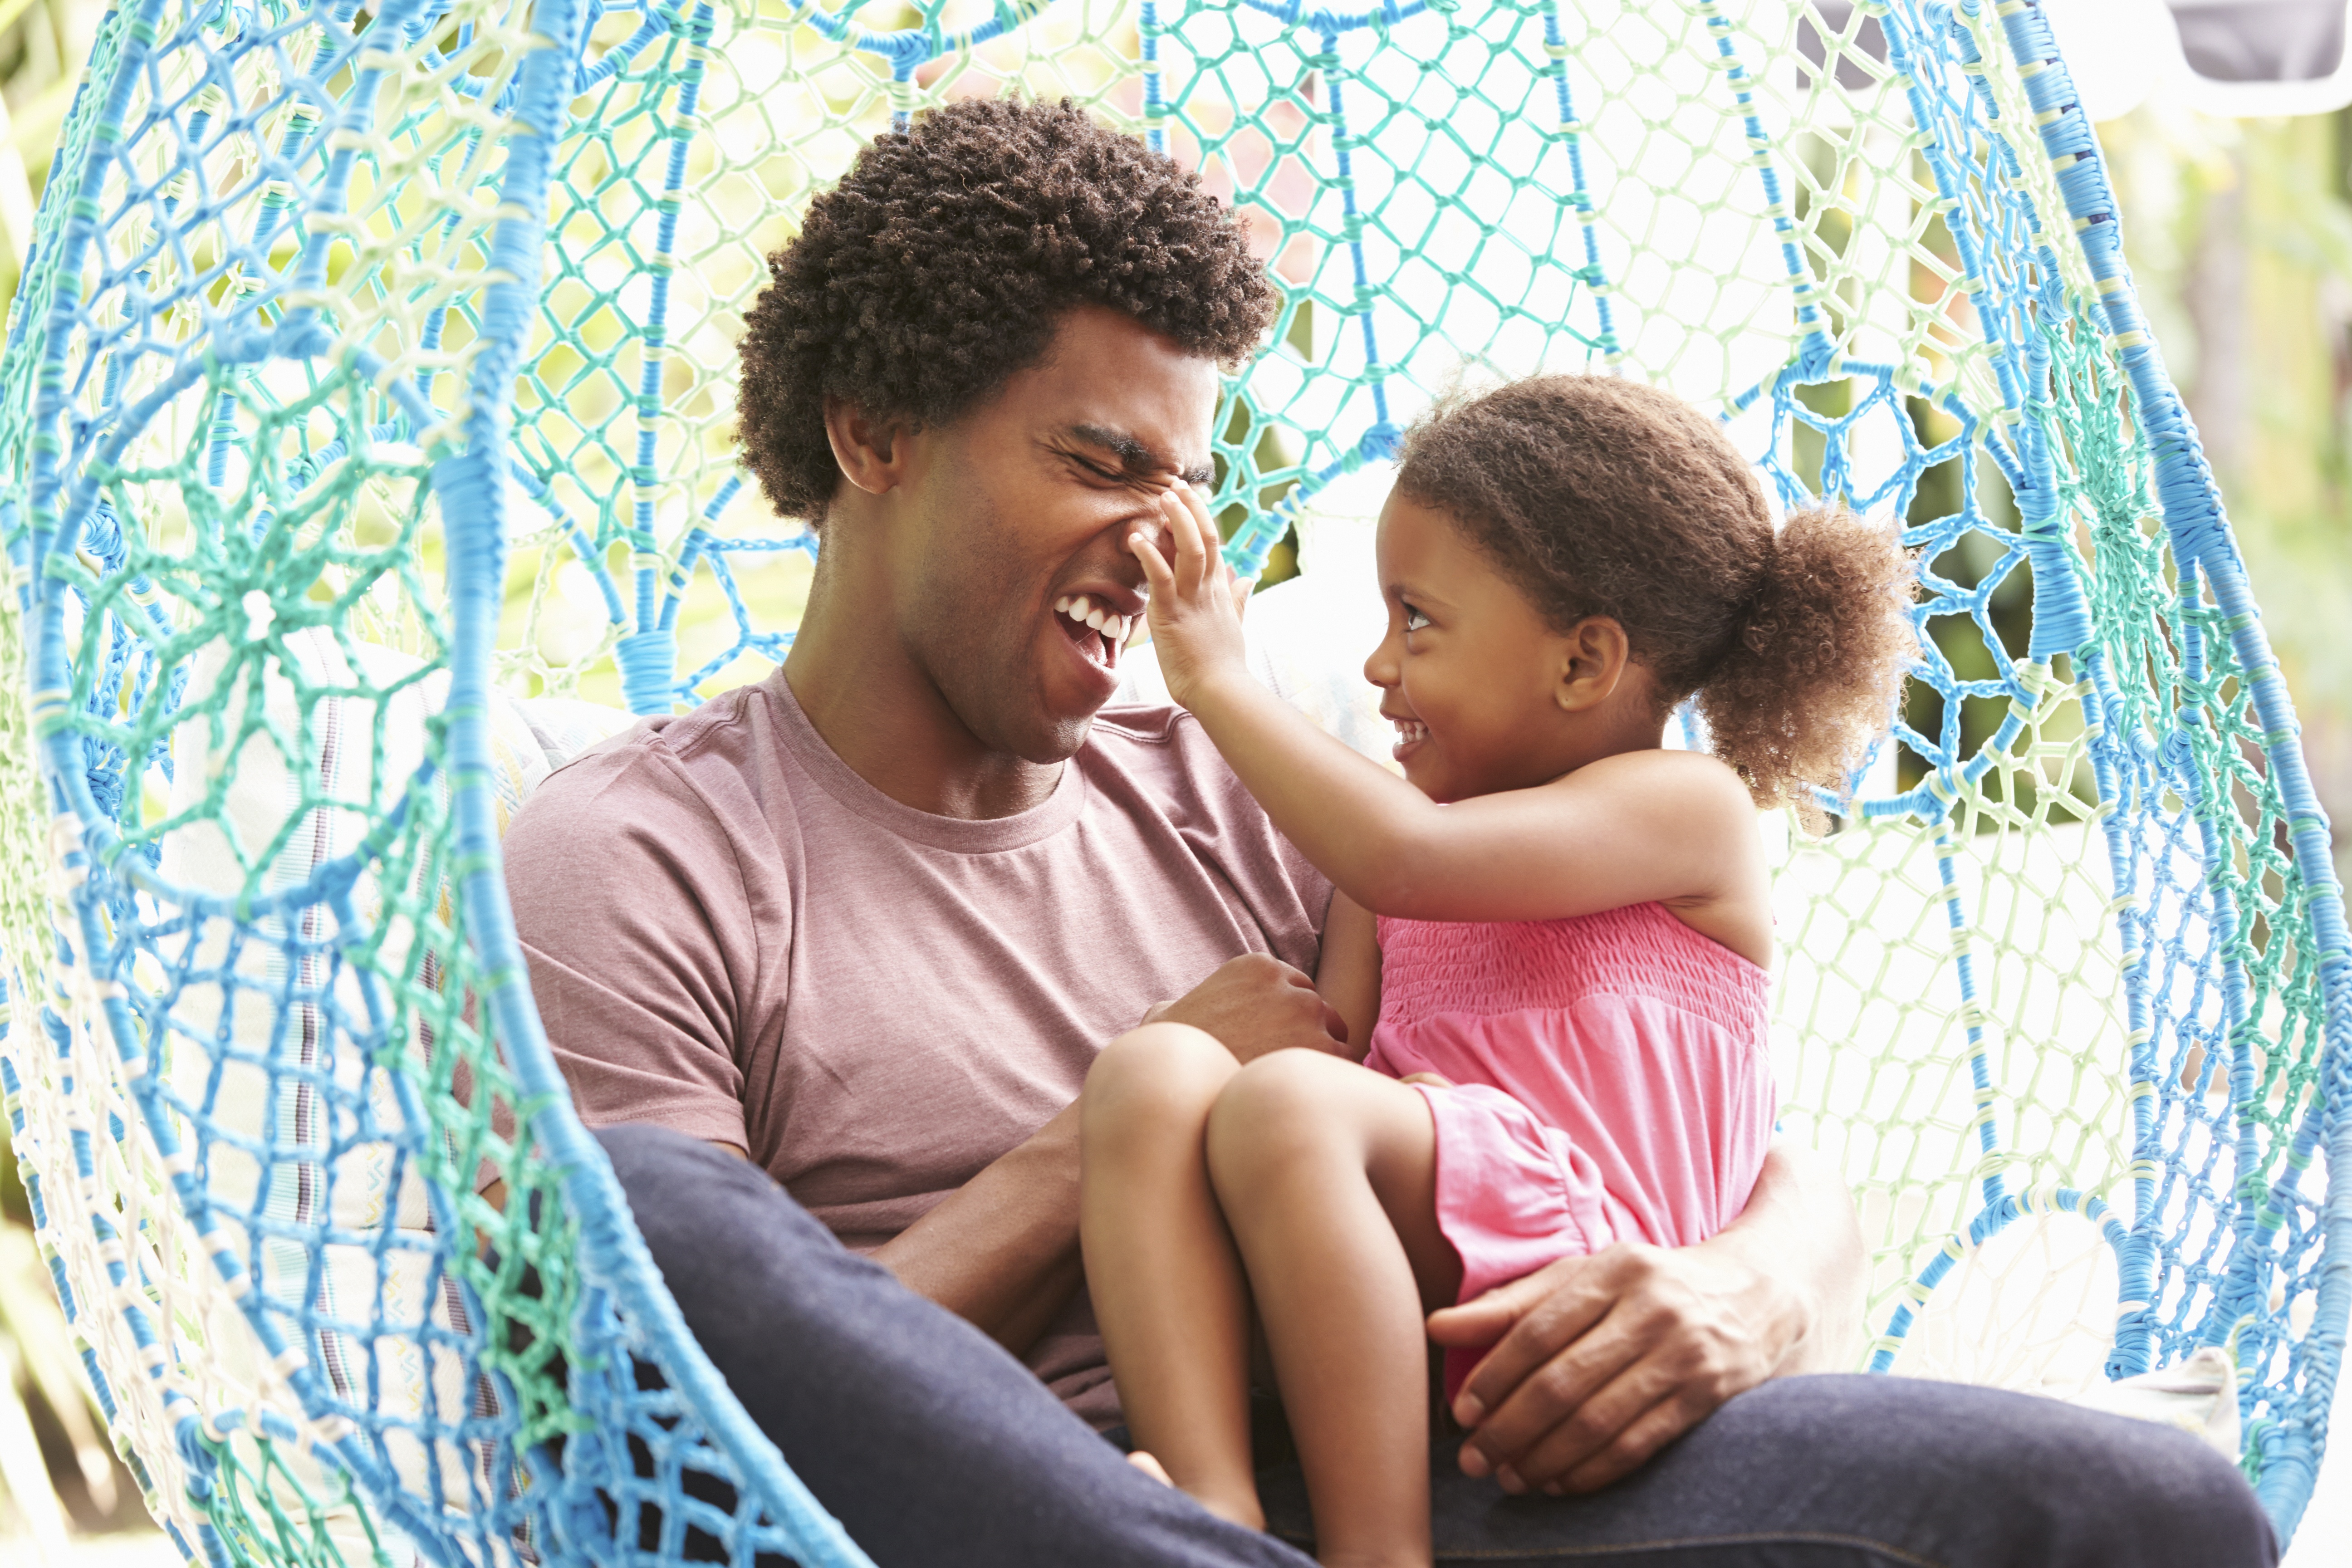 Why don't we call modern dads working dads?